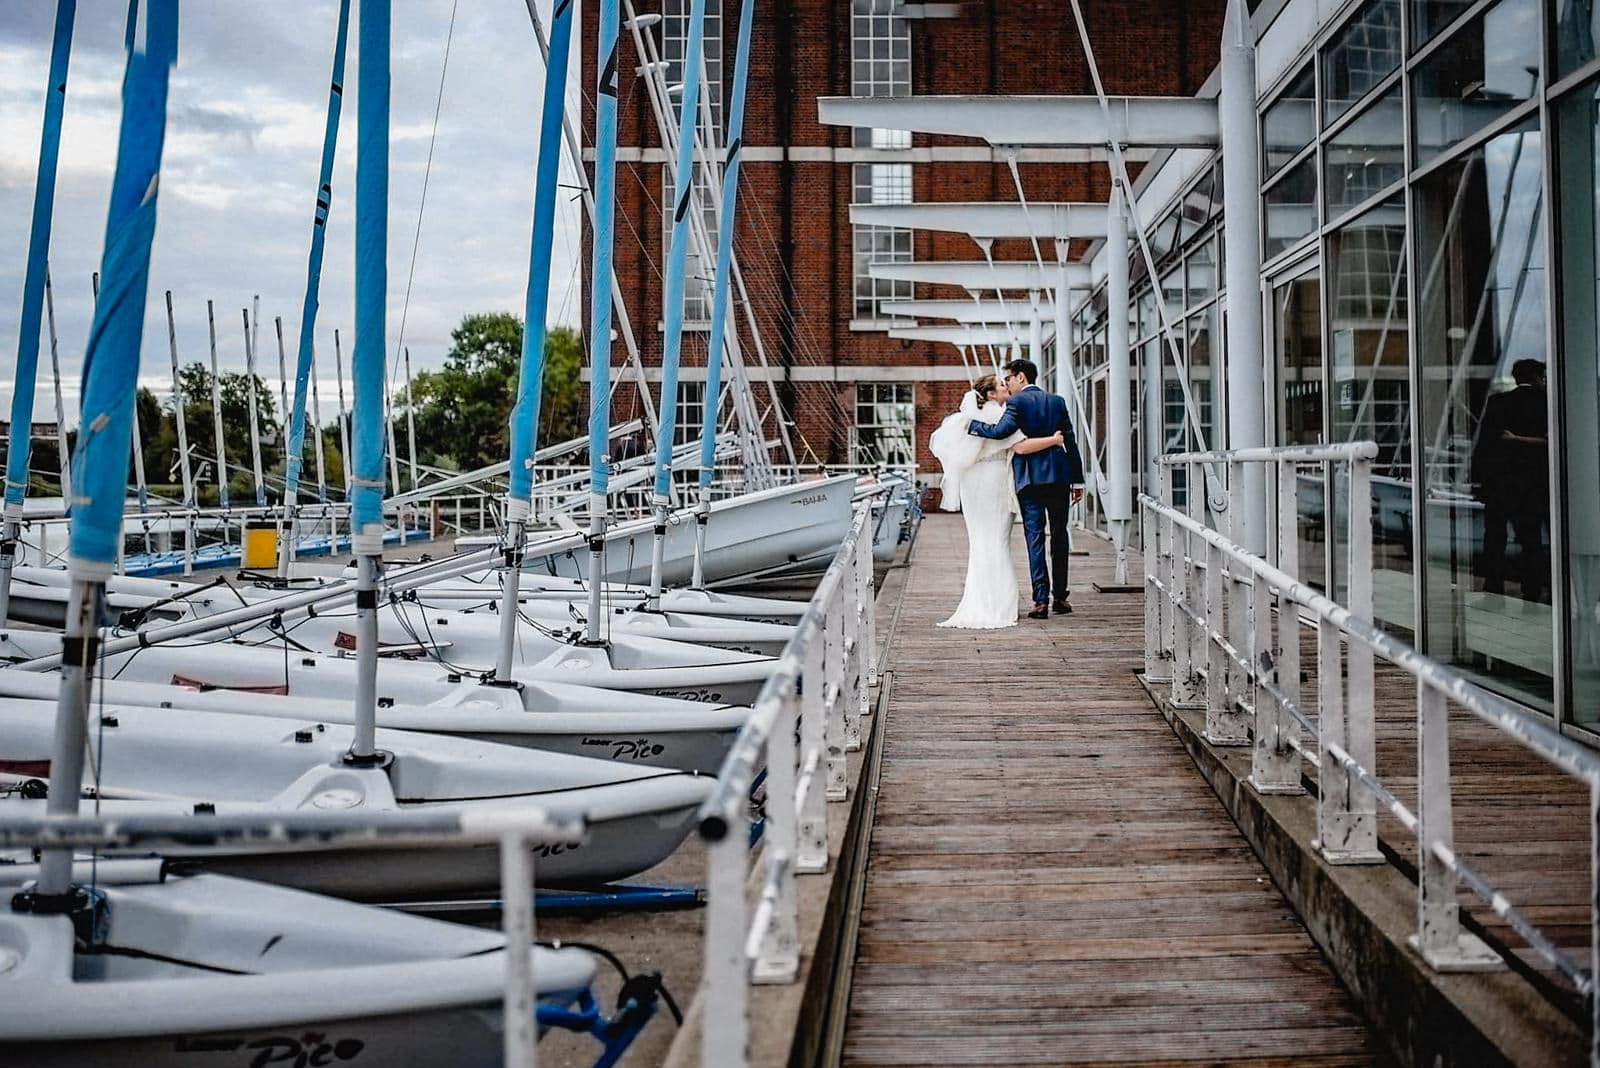 Bride and groom walk past the moored boats at the pier of the West Reservoir Centre